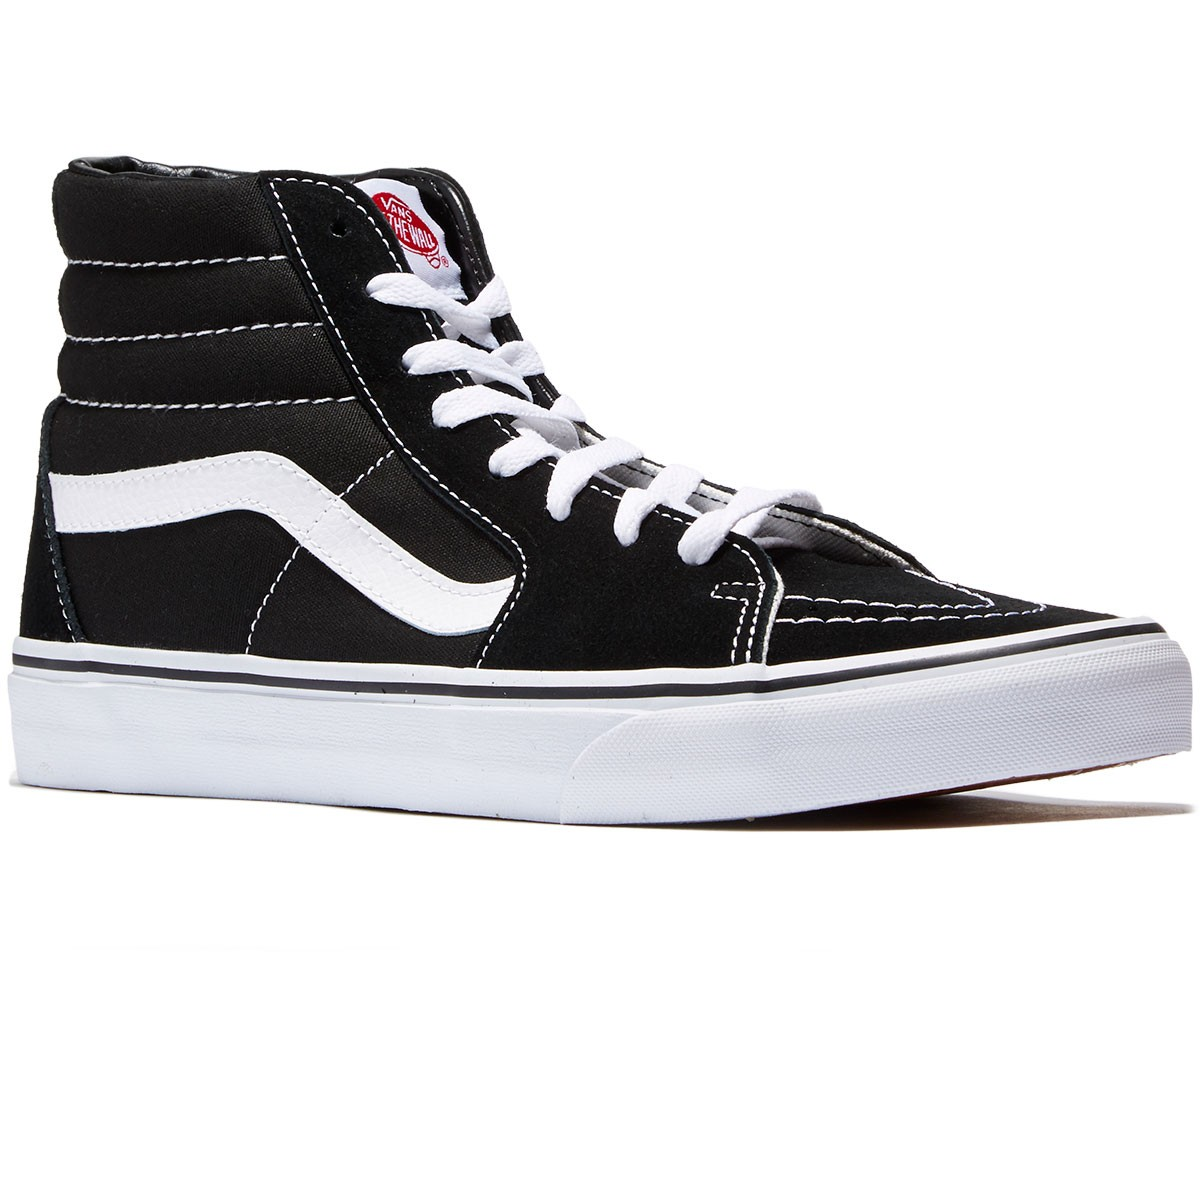 Vans Sk8-Hi Shoes - Black - 8.0